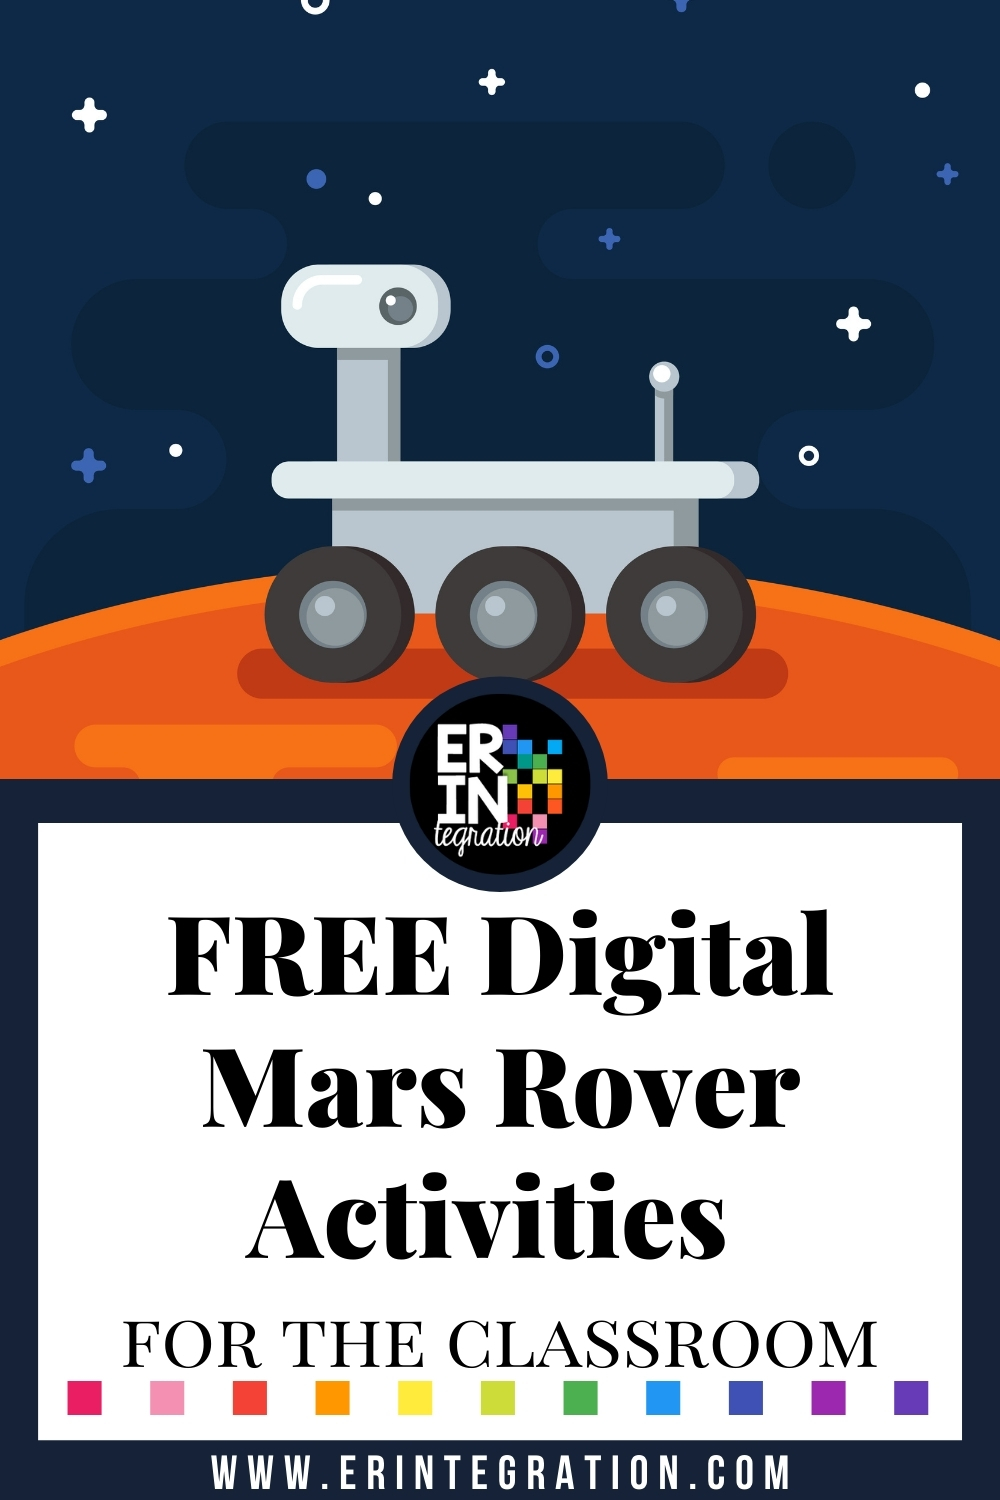 Erintegration Mars Rover Activities Digital Color by Number FREE PIN ## (1)